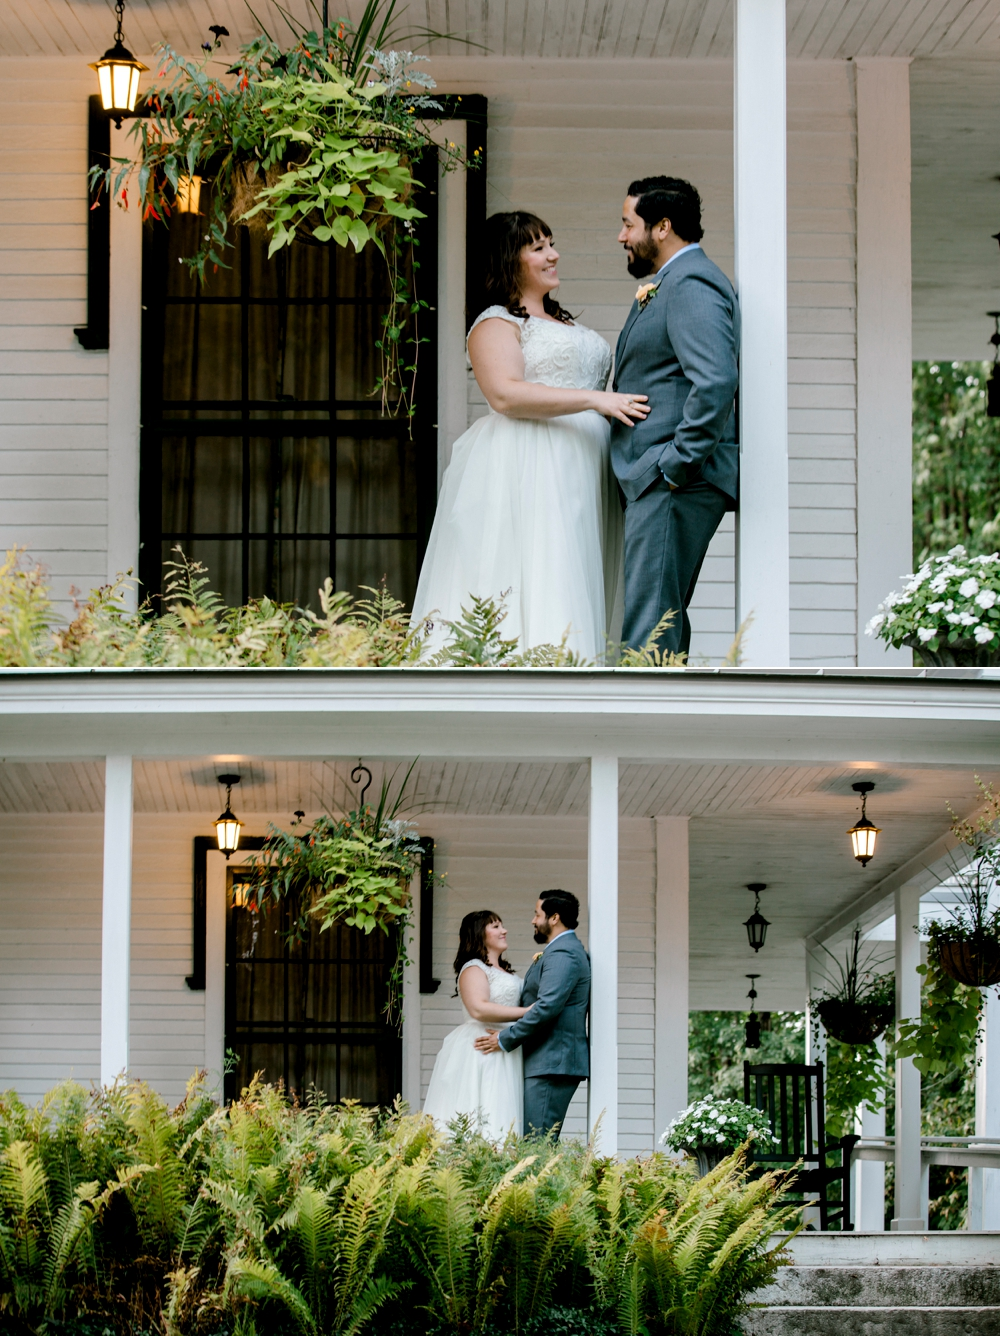 SomerbyJonesPhotography__NotchHouseWedding_NotchHouse_NotchHouseVermont_0034.jpg